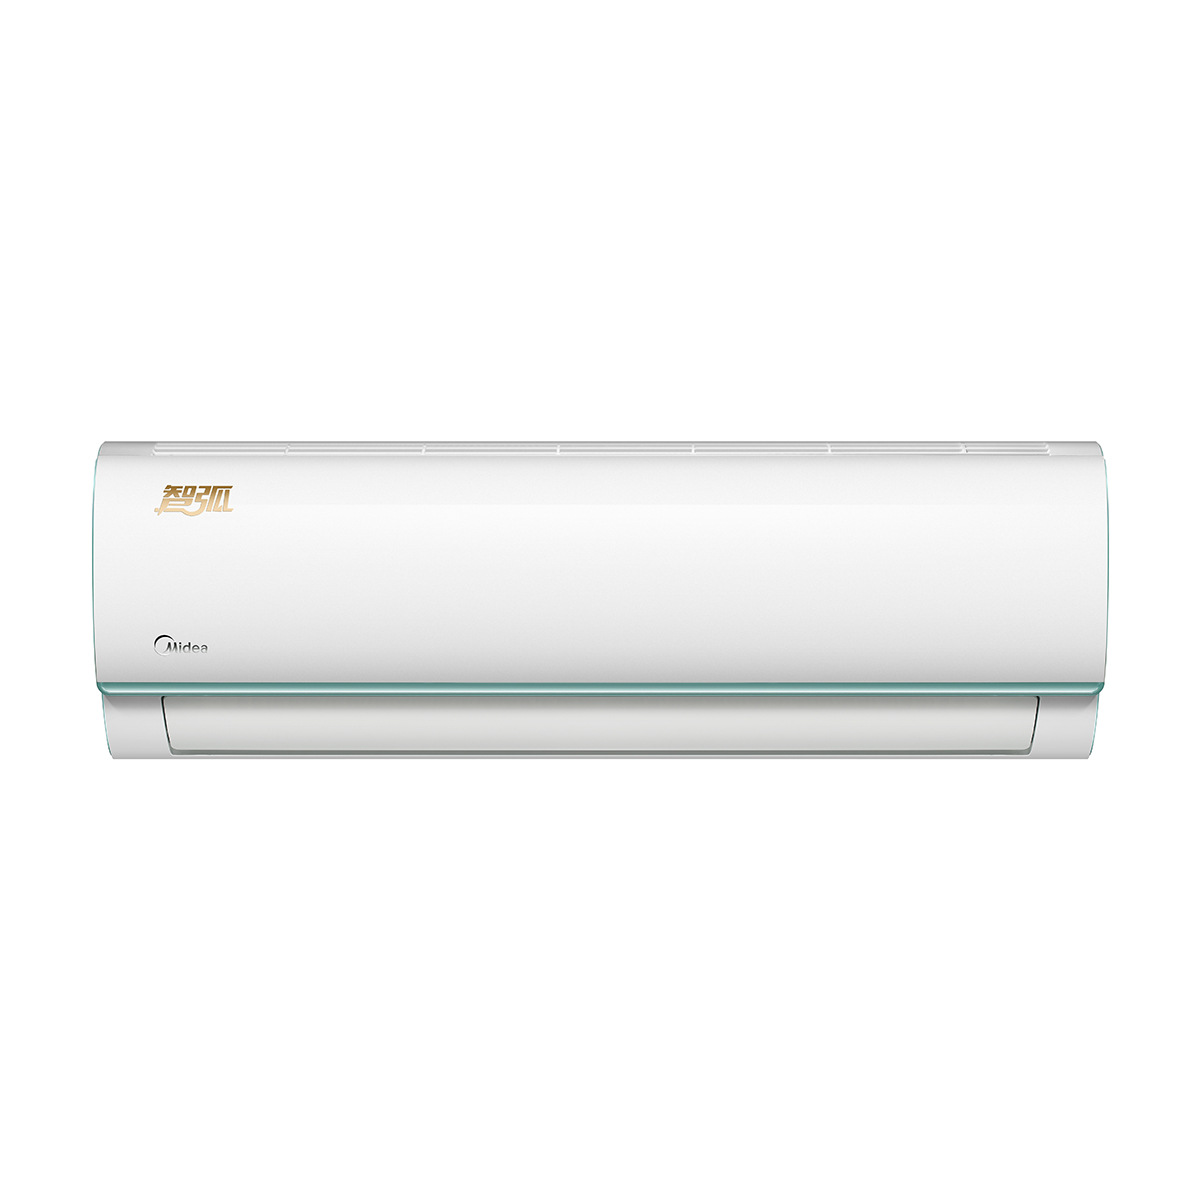 Midea/Midea KFR-26GW/WDCN8A3@ large 1hp inverter household heating and cooling wall-mounted air cond